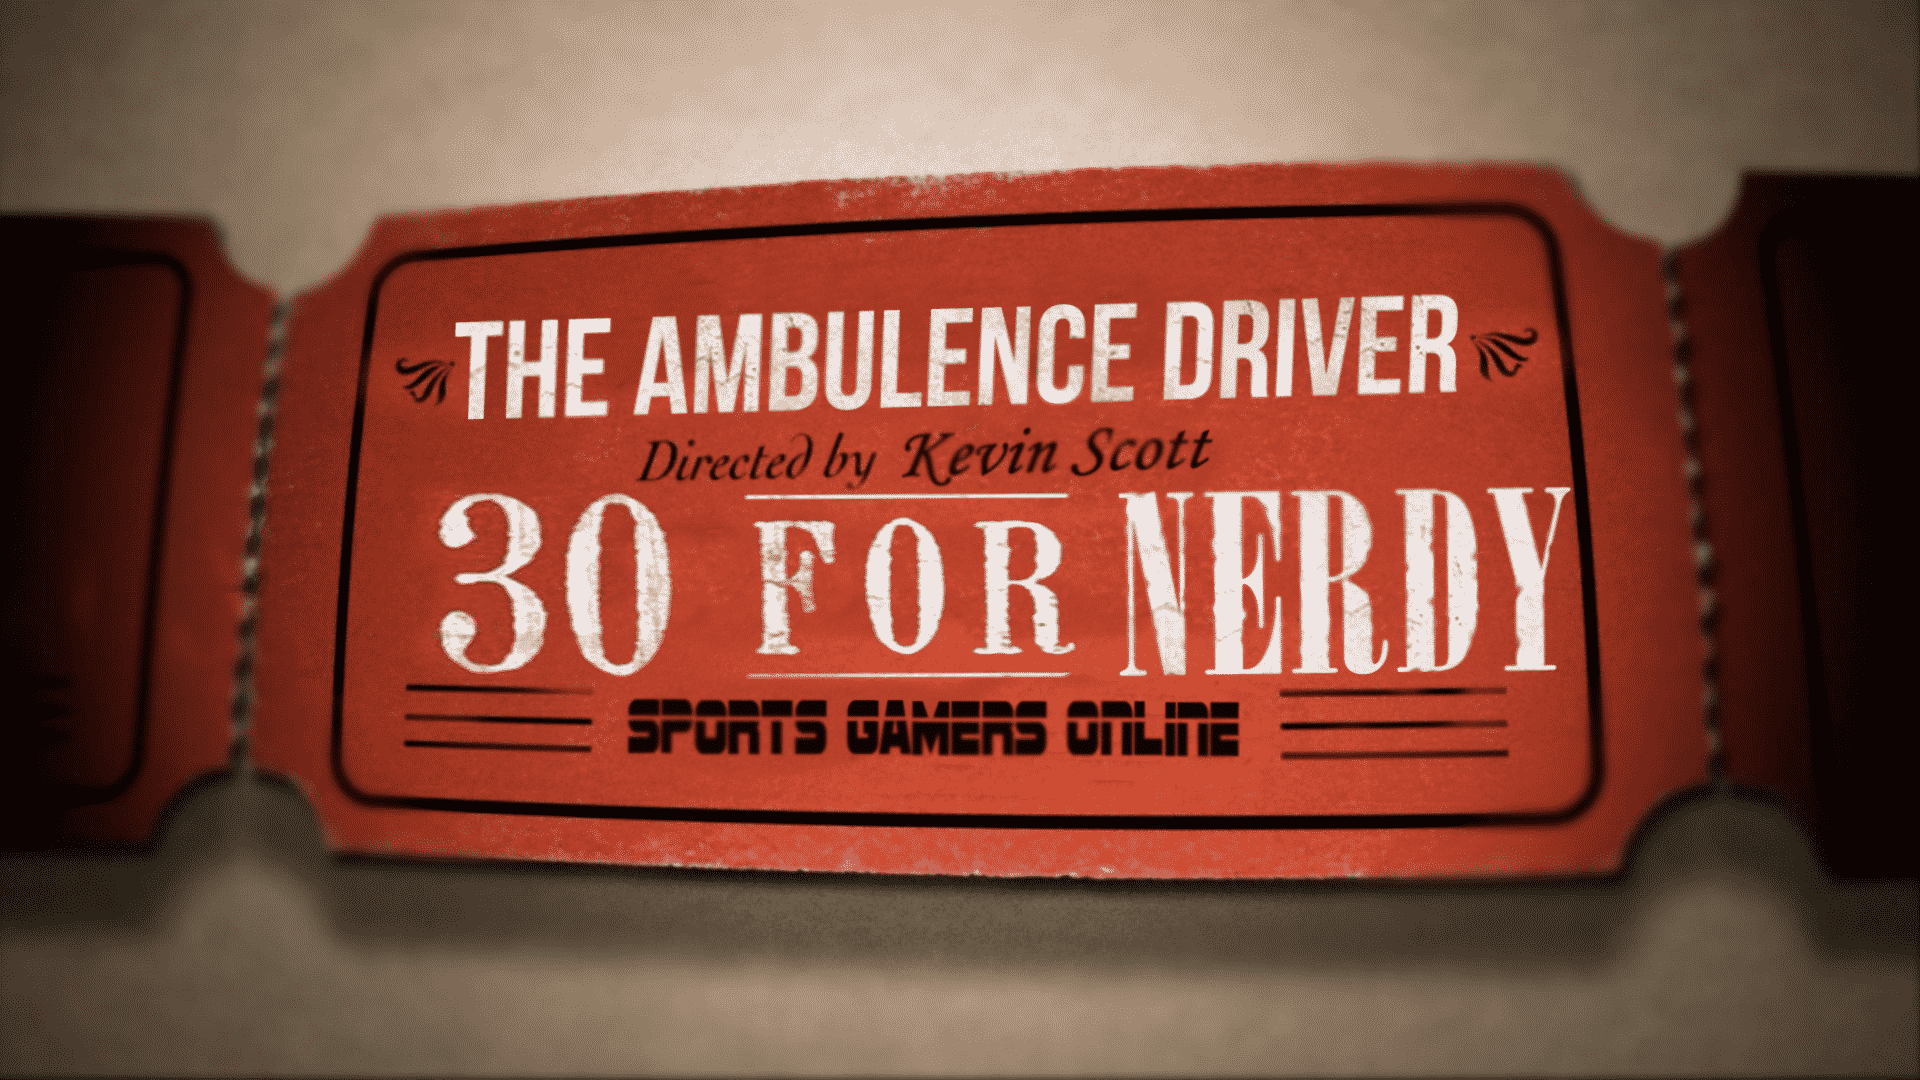 30 For Nerdy The Ambulance driver